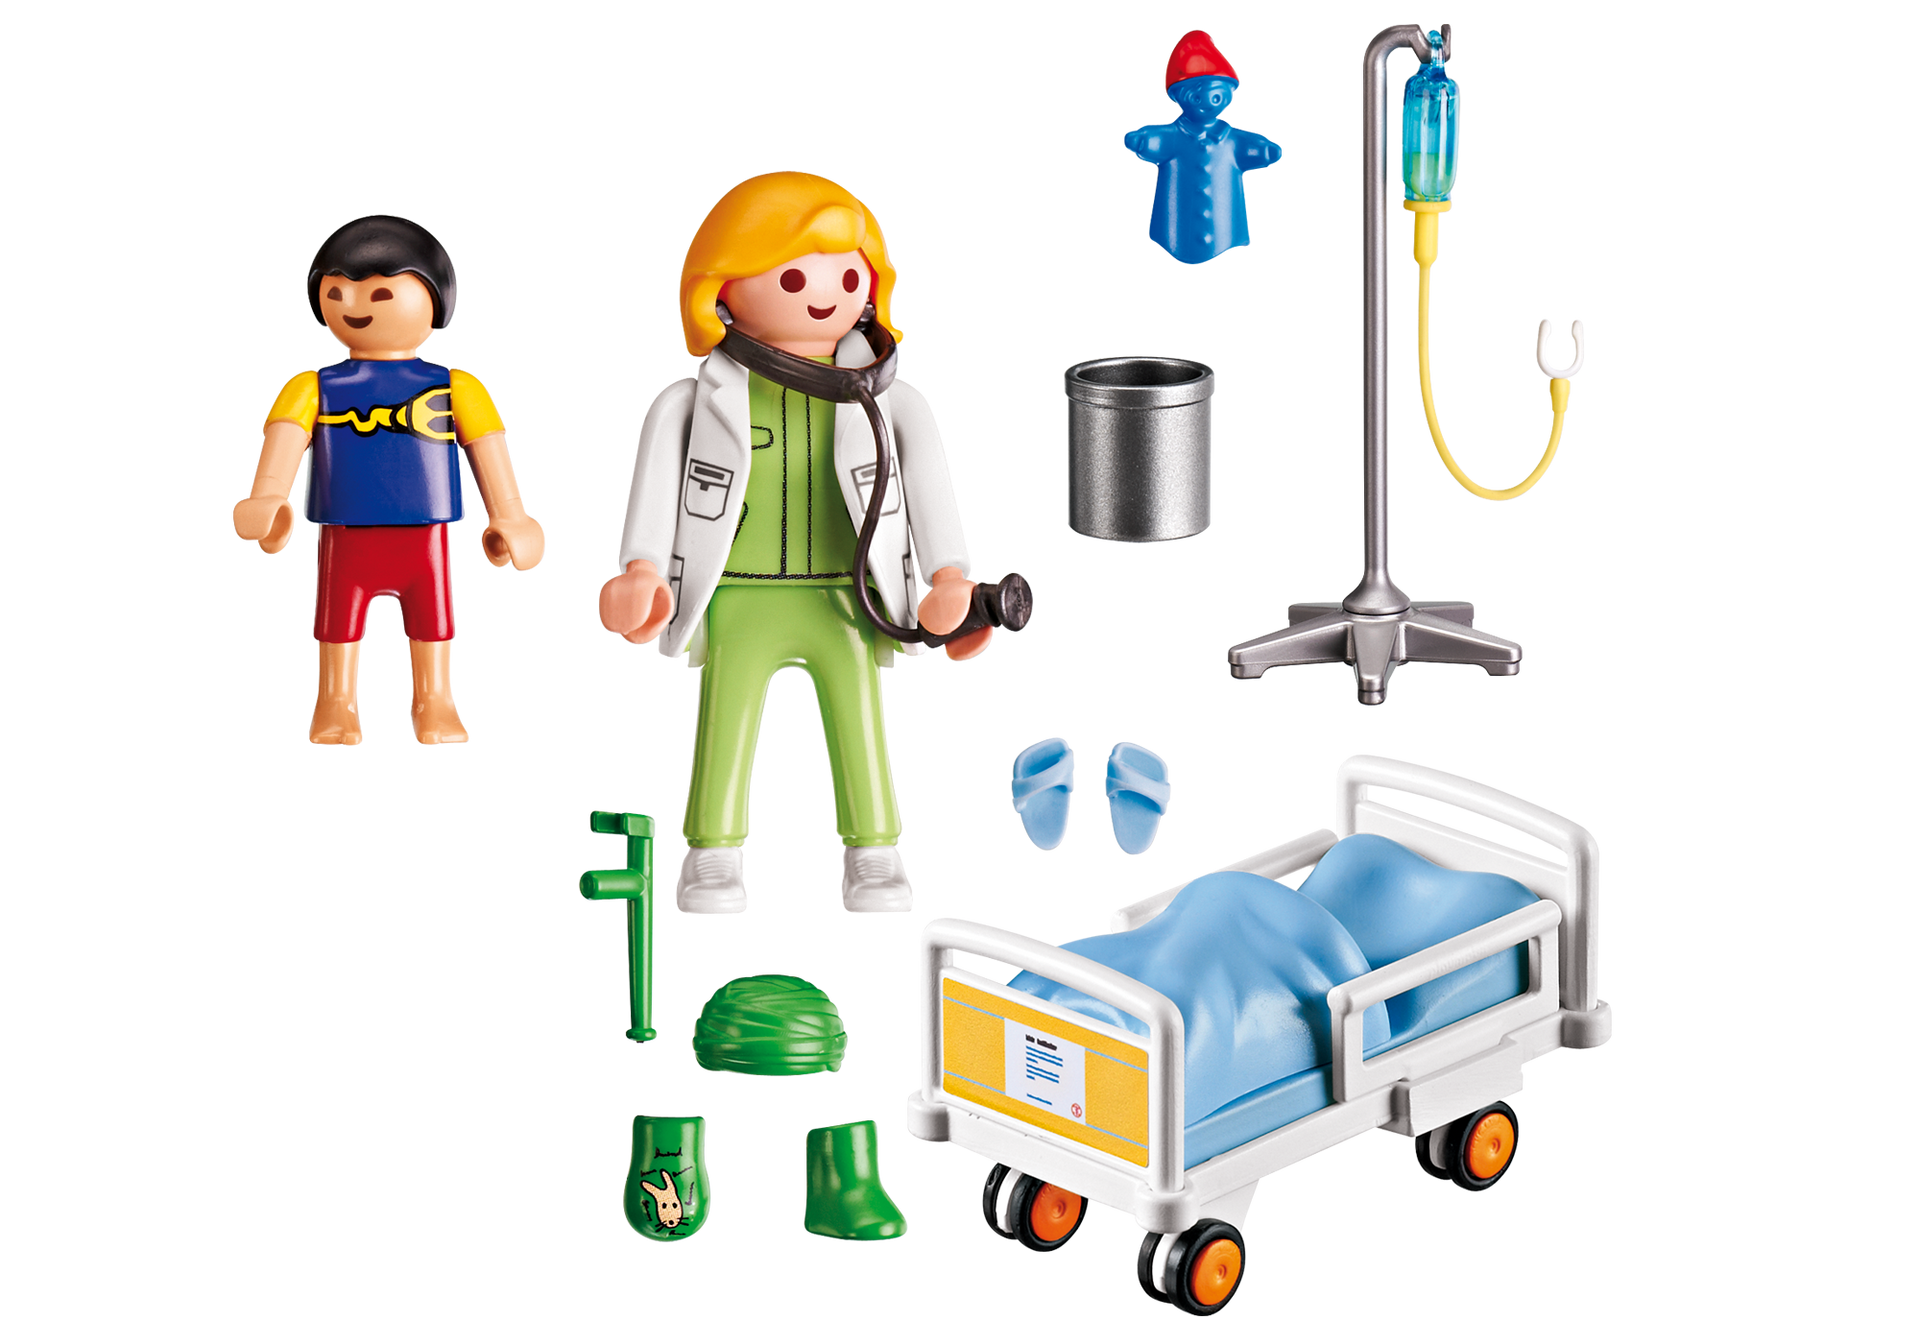 Heartbeat clipart doctor. With child playmobil usa